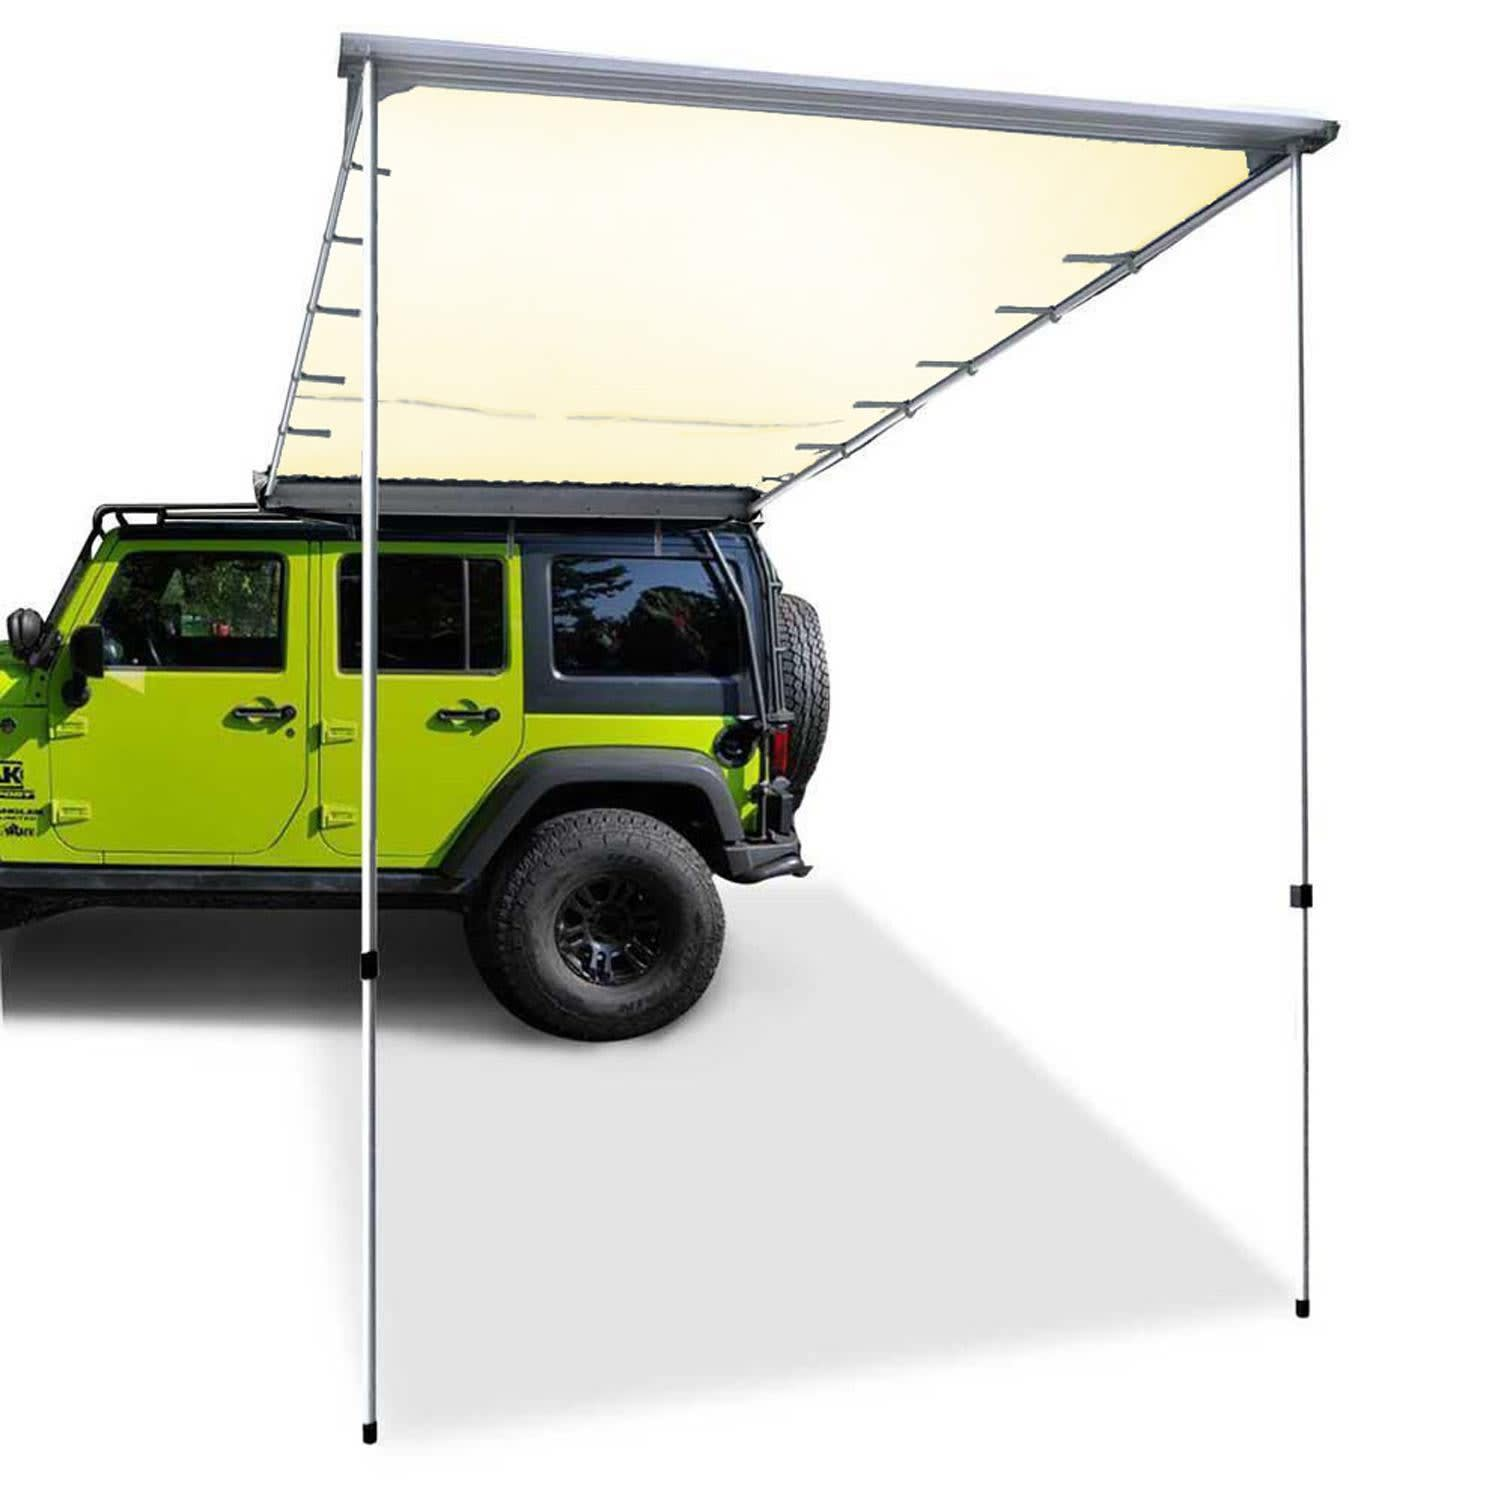 Image of 1.4m x 2m Car Side Awning Roof